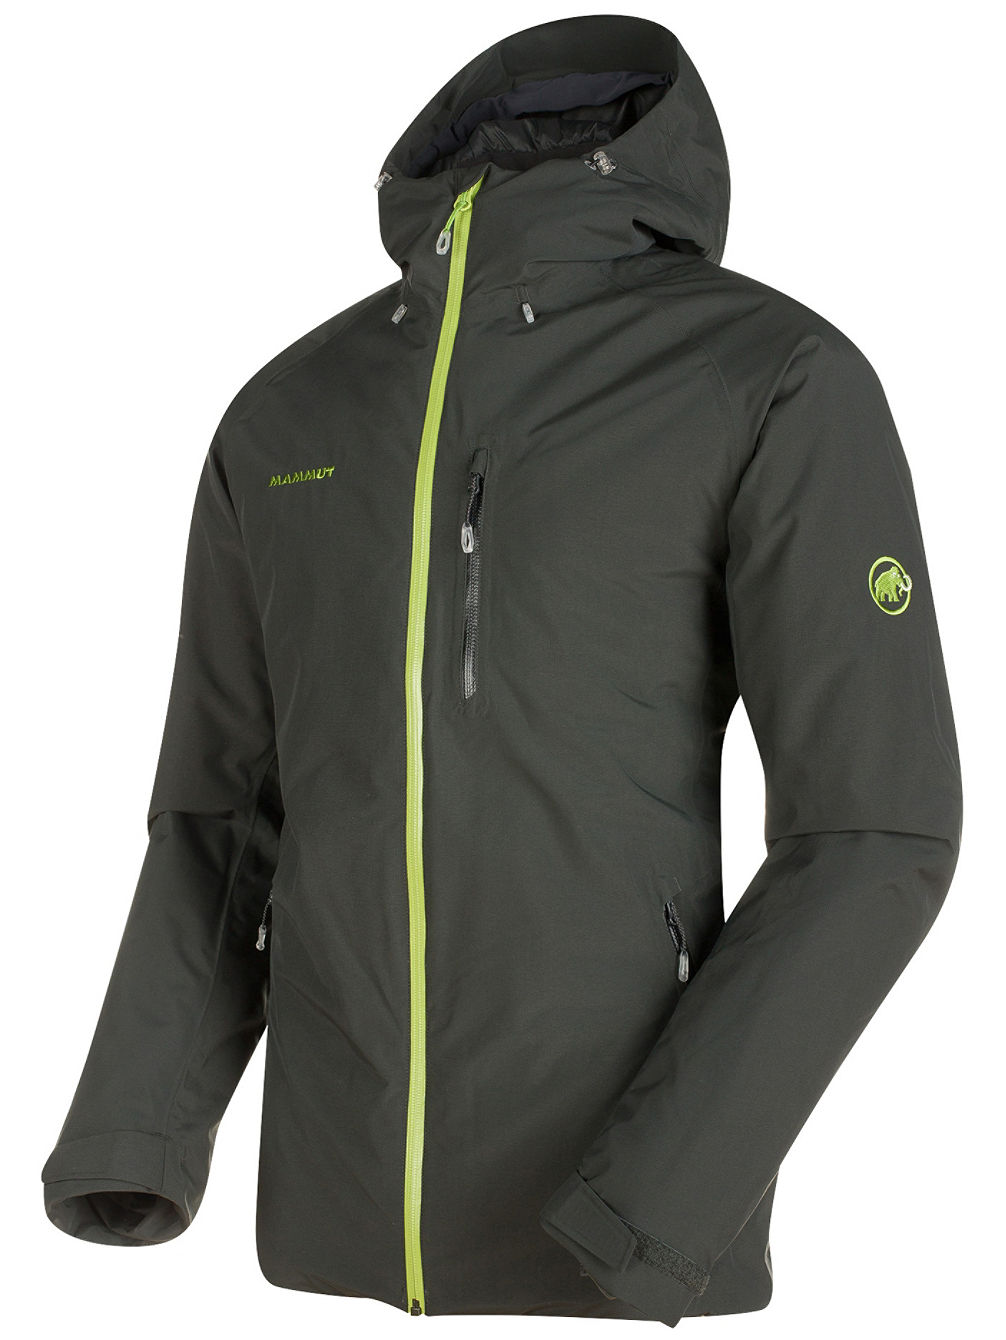 Runbold Hs Thermo Hooded Outdoor Jacket